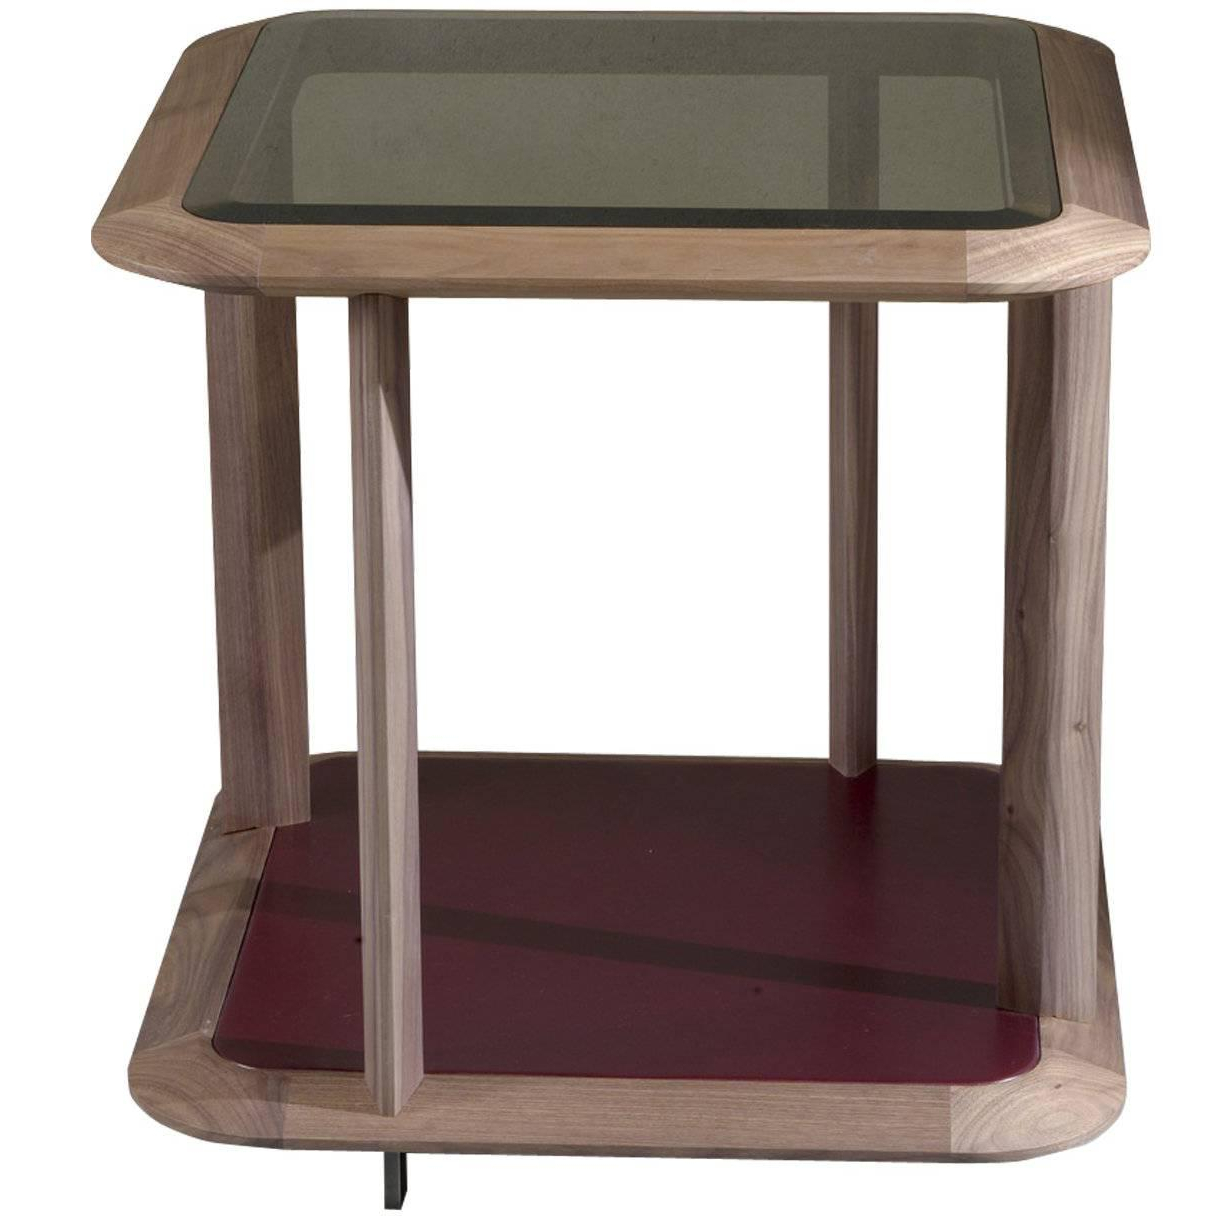 Widely Used Adam Coffee Tables Inside Adam Coffee Table For Sale At 1stdibs (View 6 of 20)